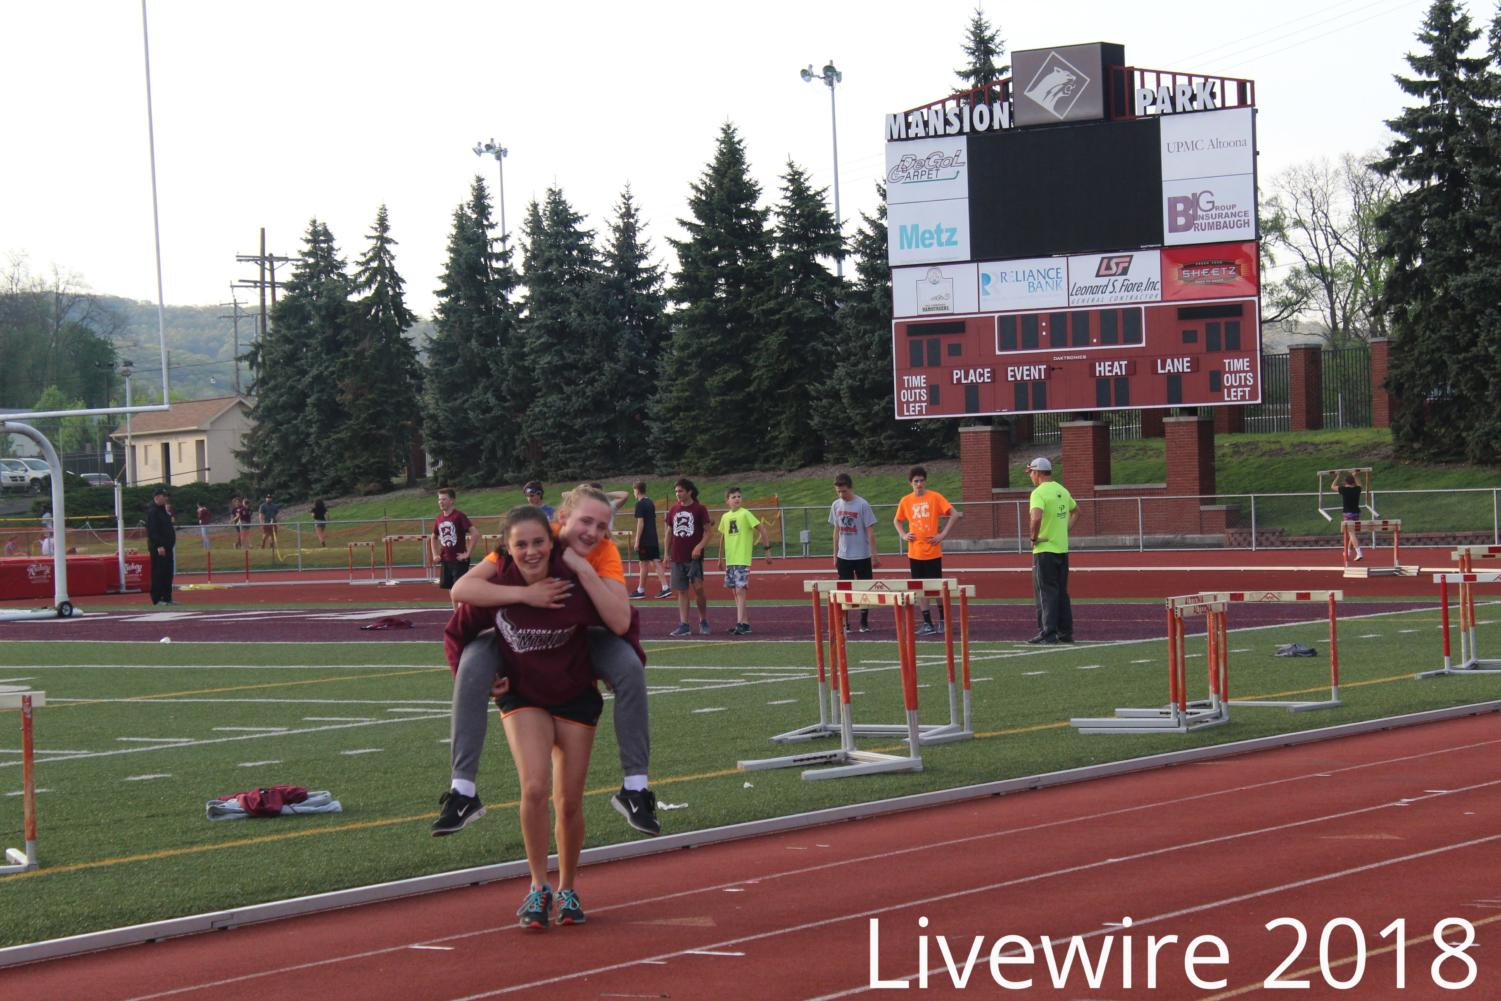 Let's go. Jadeyn Price and Nyah Perez run over to the camera at track practice on May 4. Price and Perez got the picture then practiced with the team.